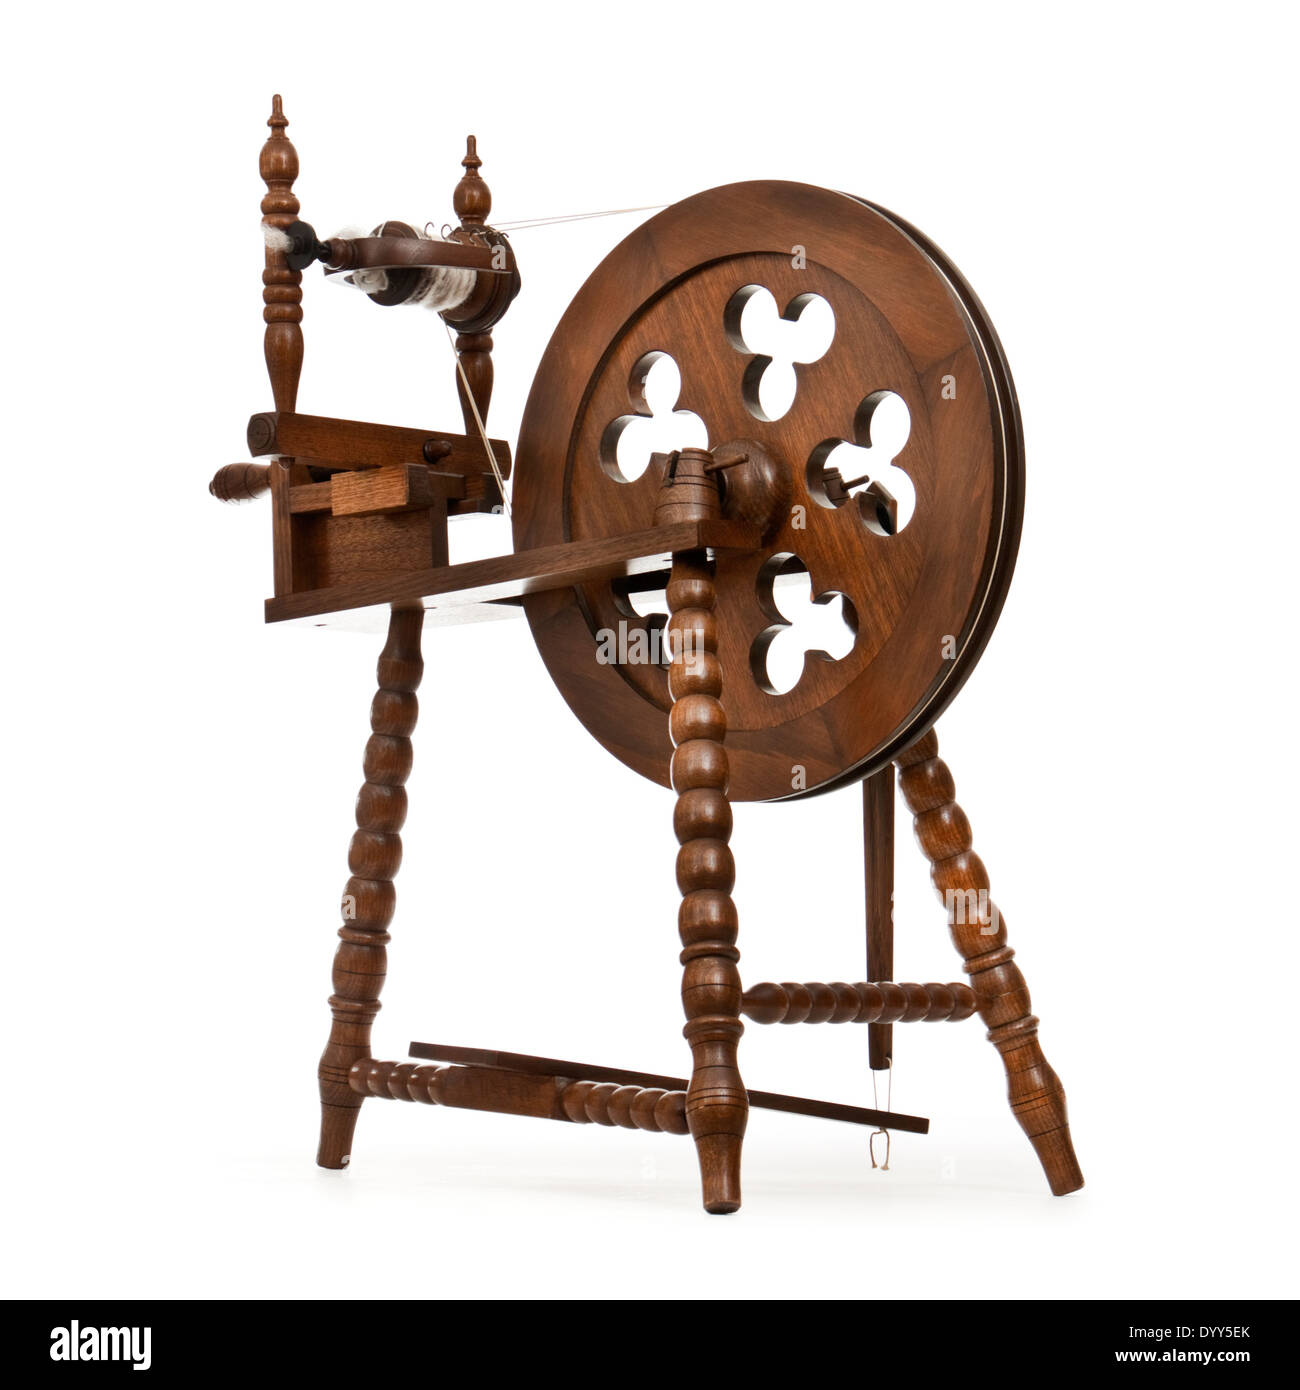 Wooden handmade spinning wheel against white background Stock Photo